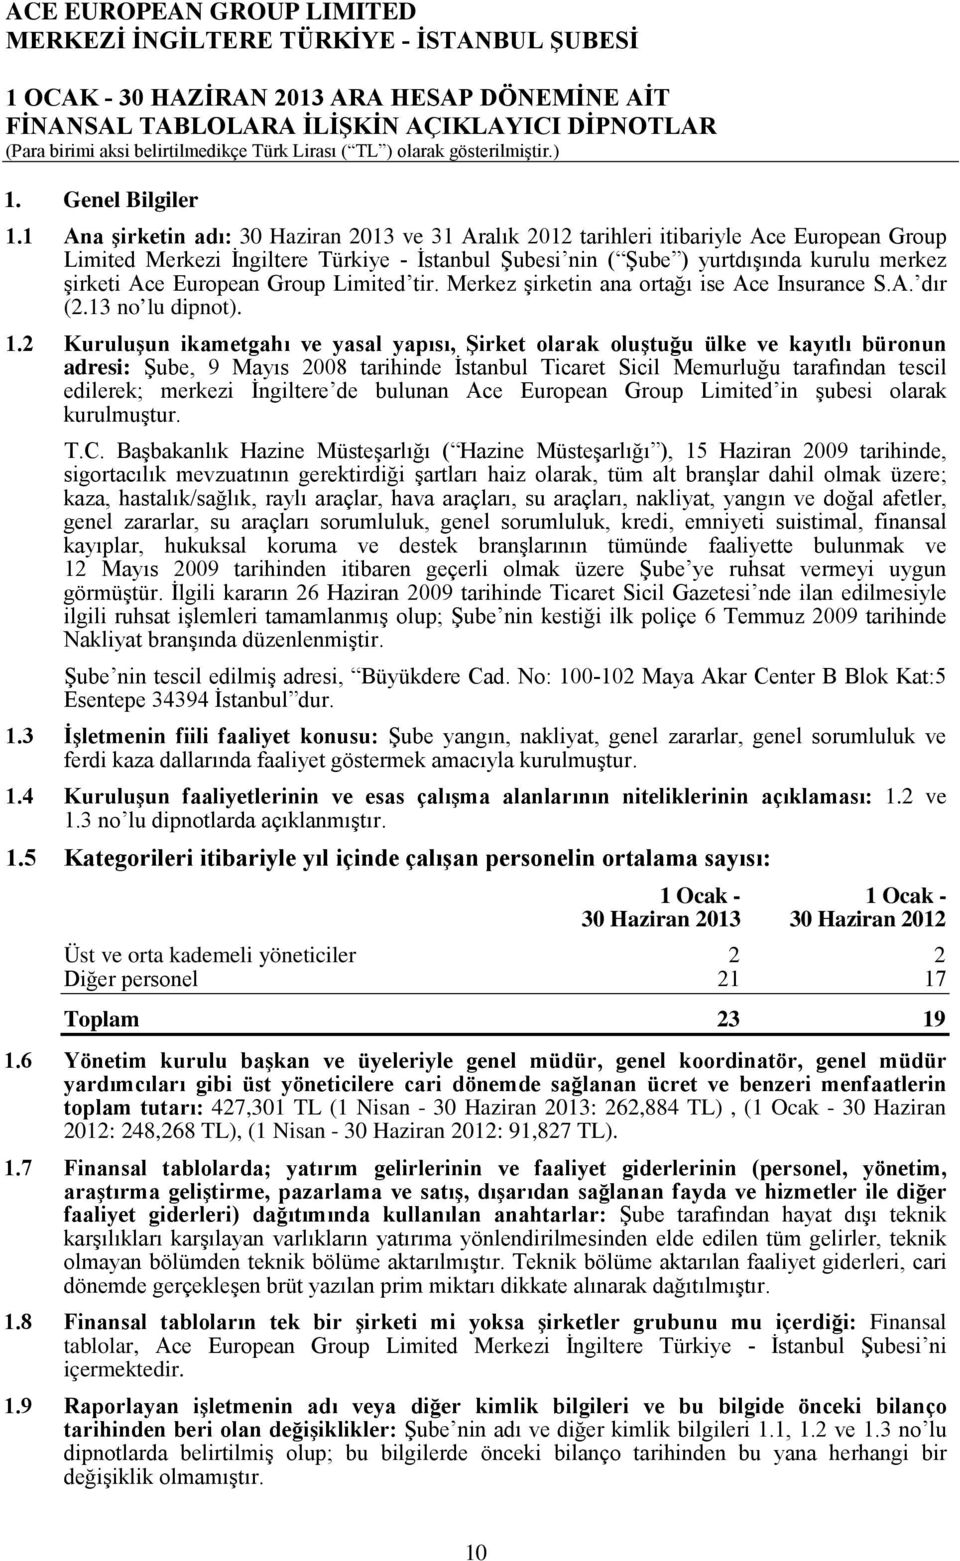 European Group Limited tir. Merkez şirketin ana ortağı ise Ace Insurance S.A. dır (2.13 no lu dipnot). 1.